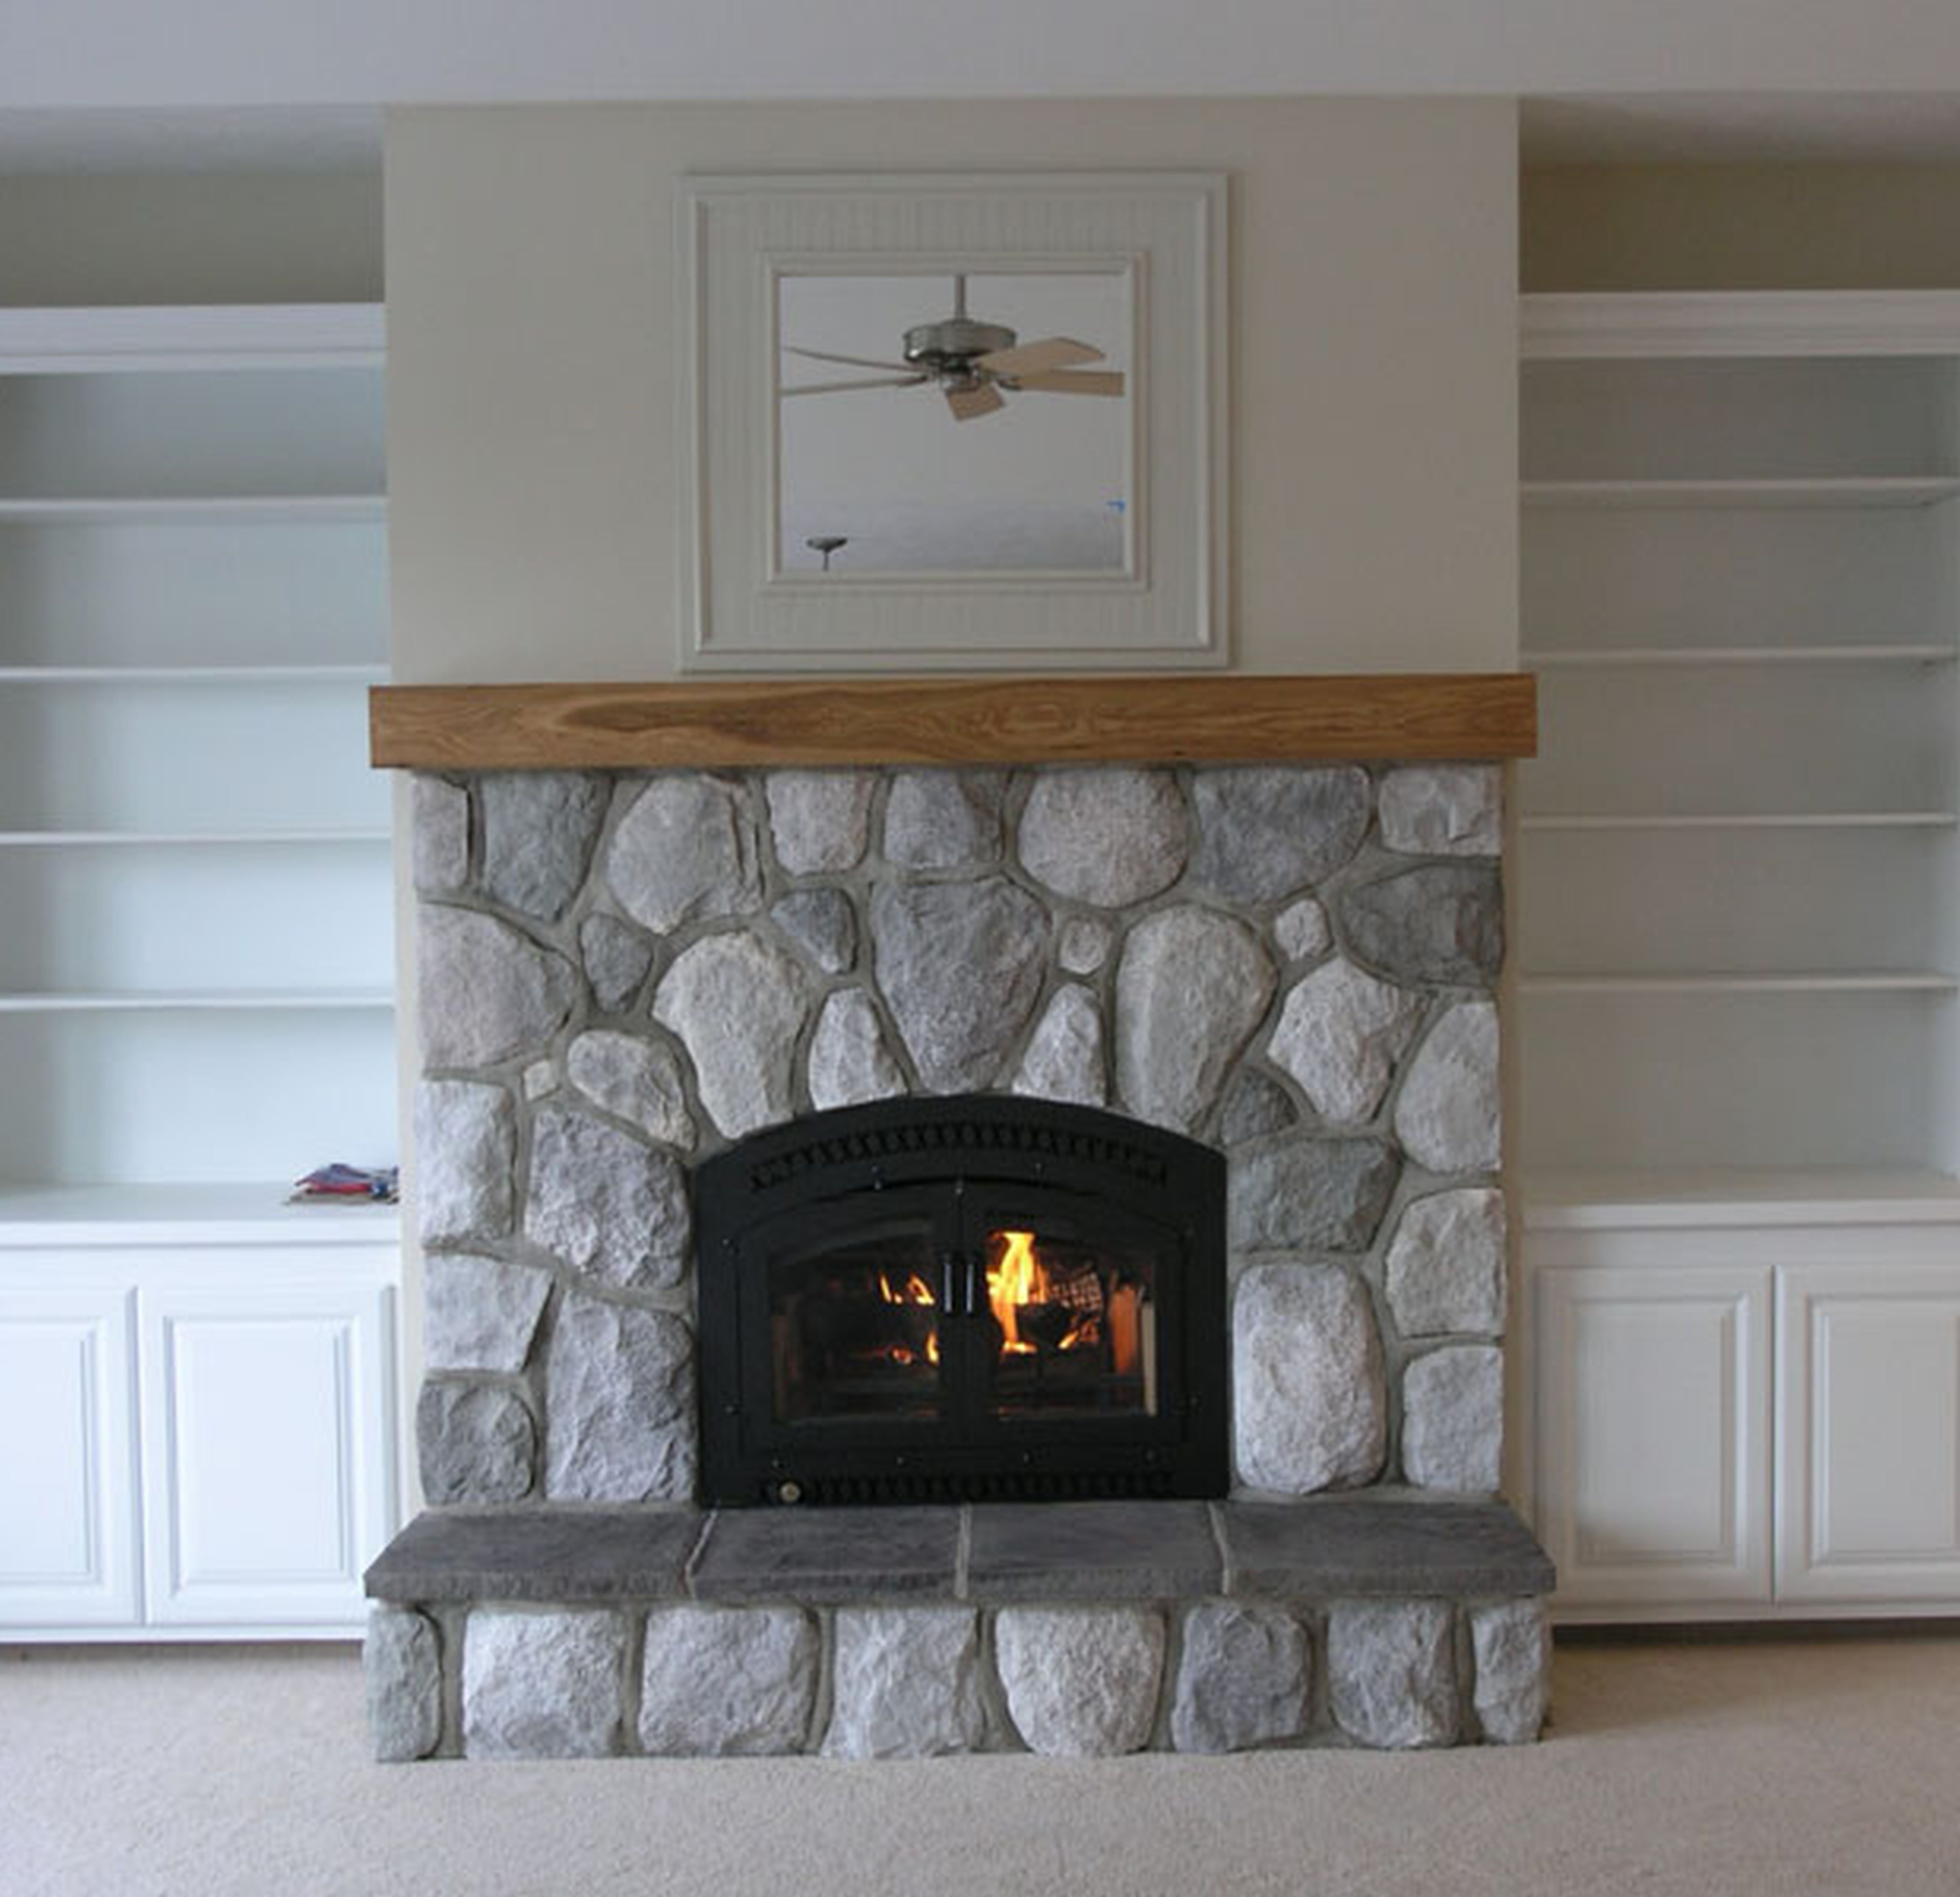 Cast Stone Fireplace Surround Lovely Interior Find Stone Fireplace Ideas Fits Perfectly to Your